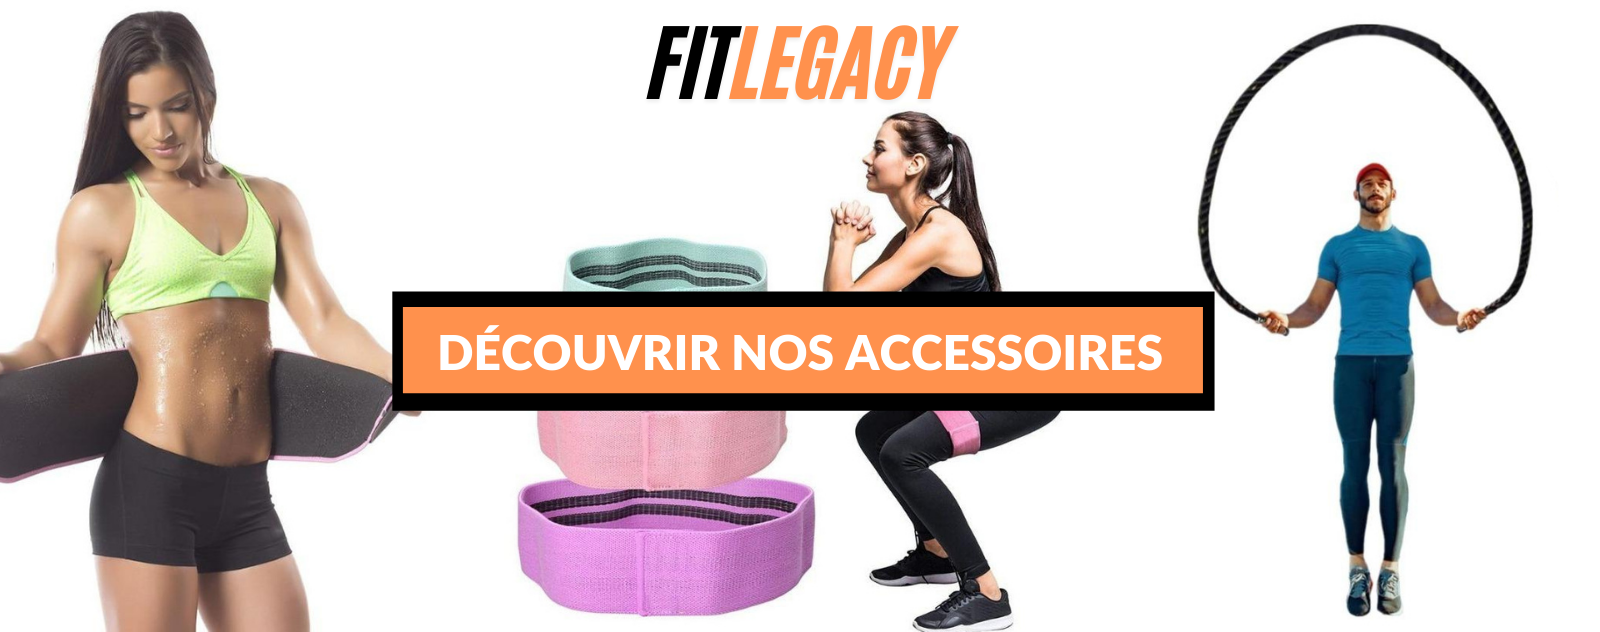 Accessoires fitlegacy